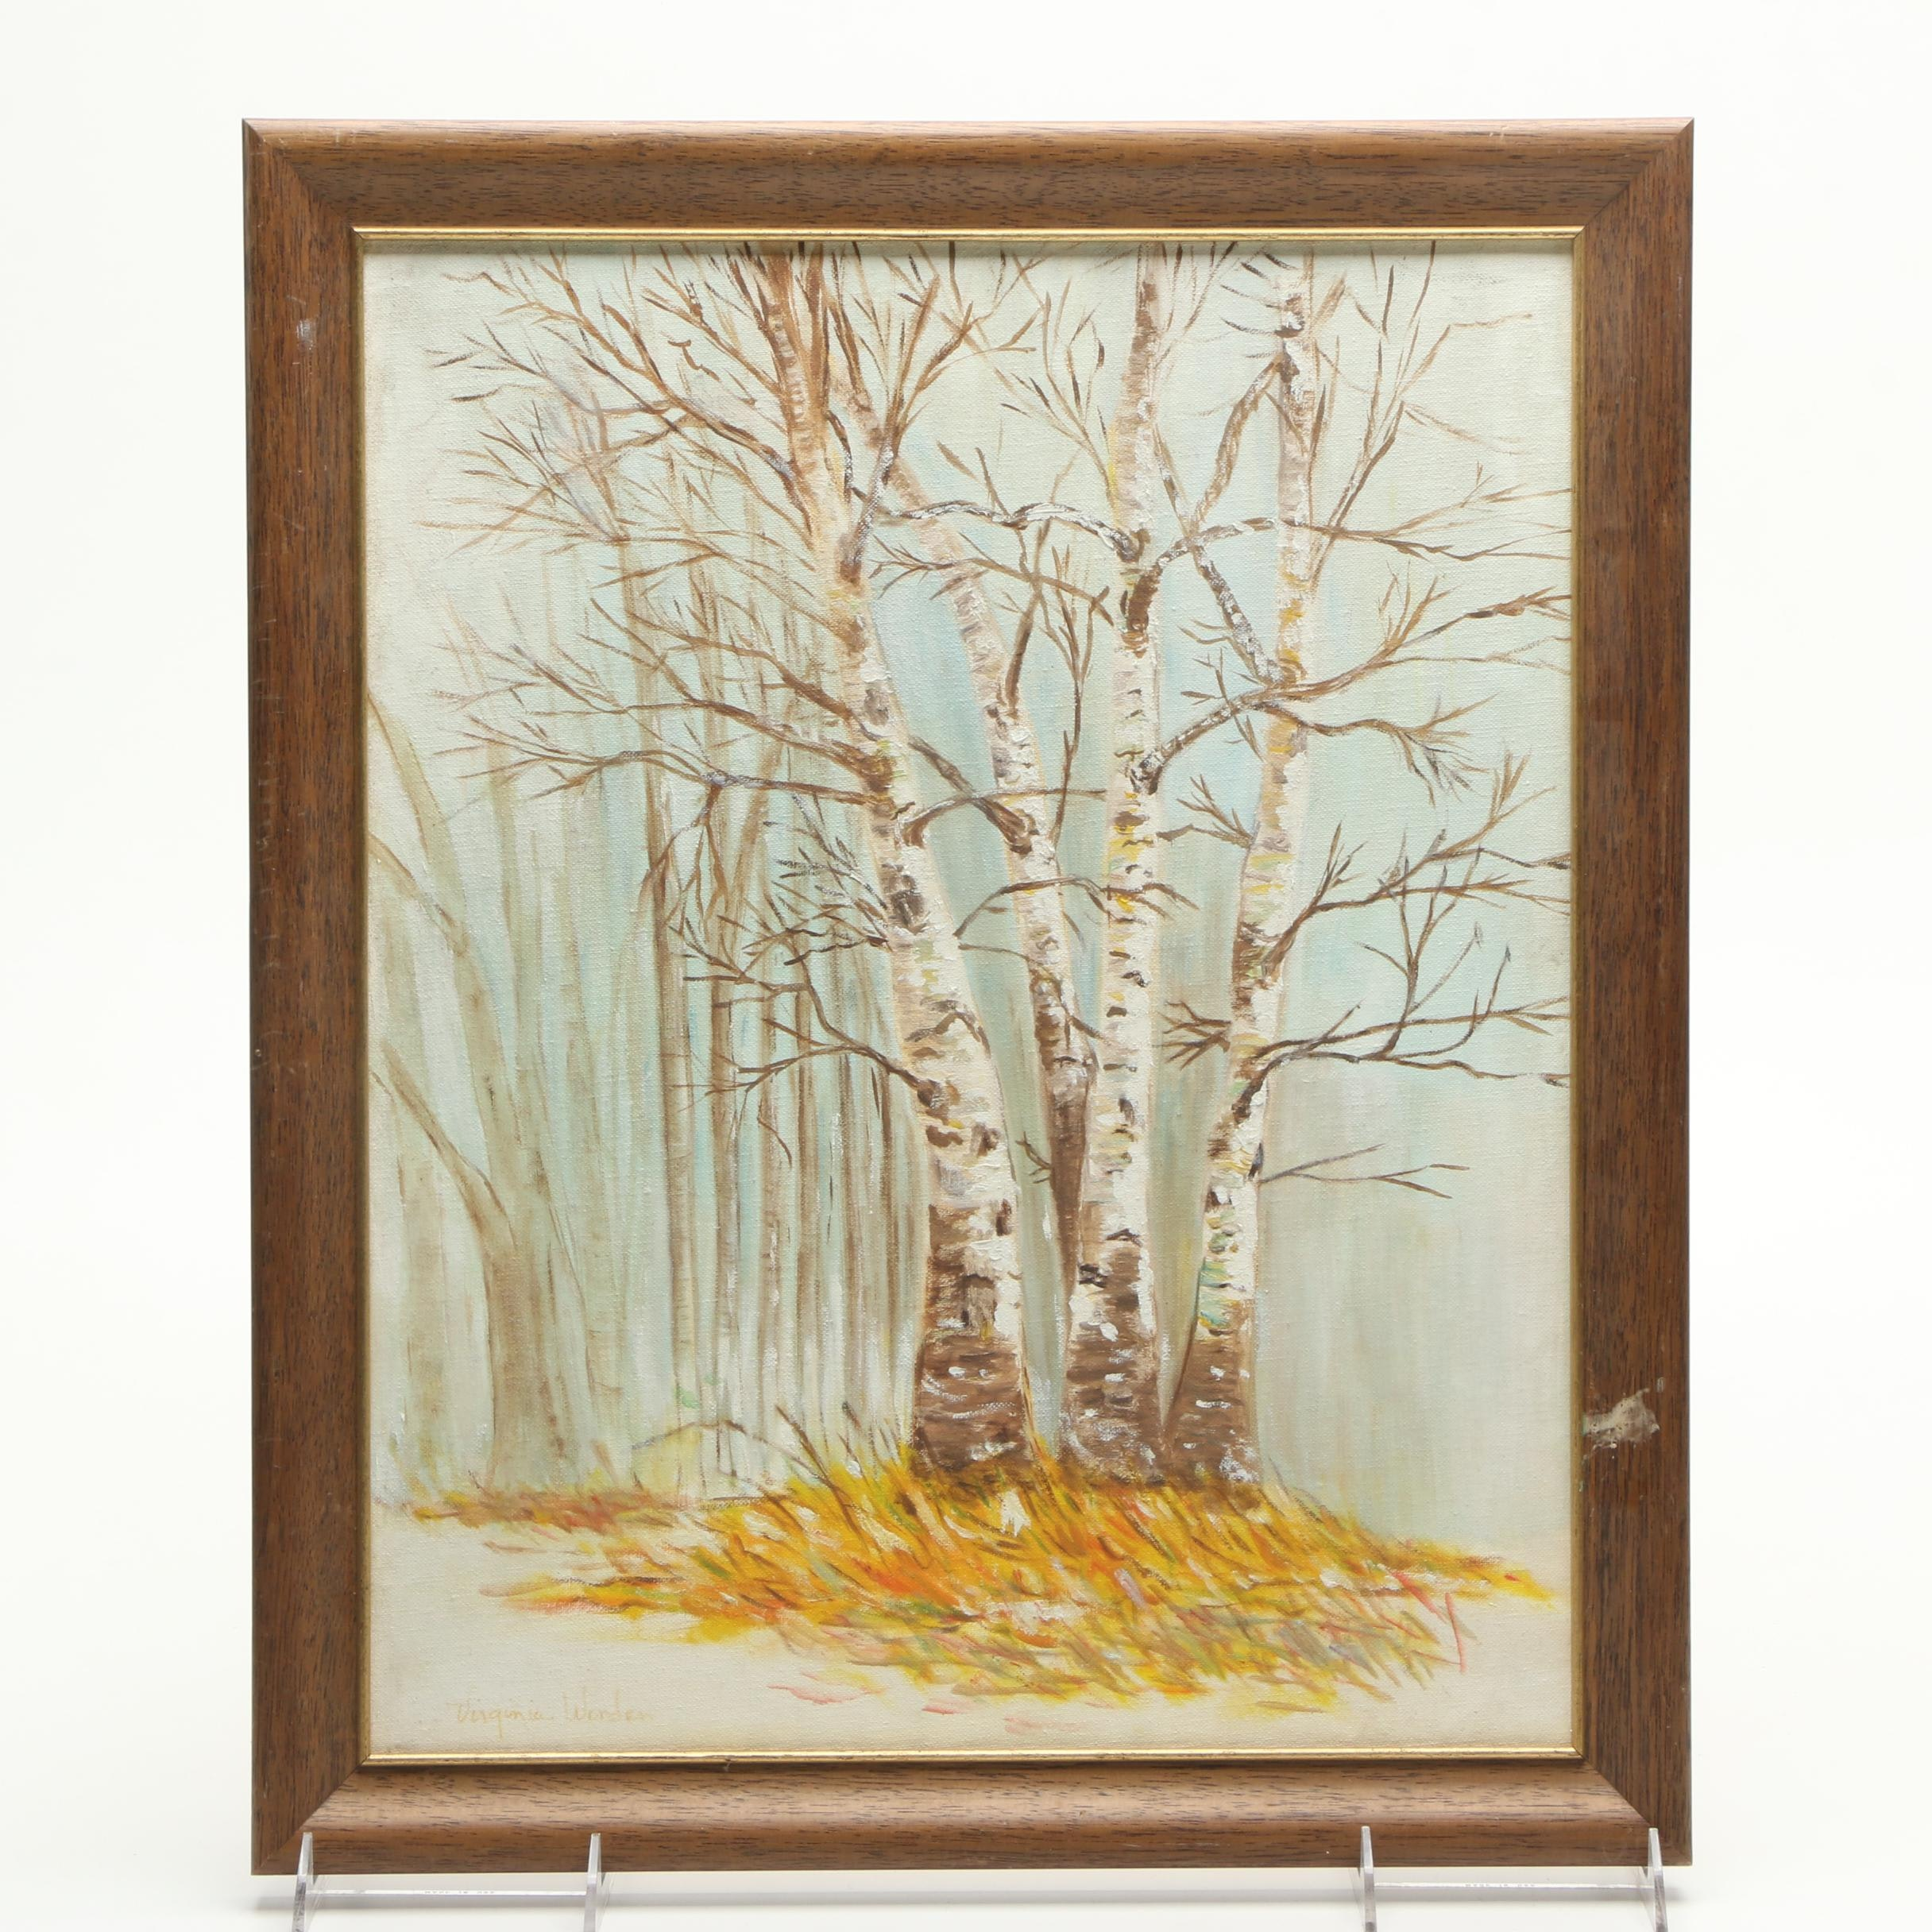 Virginia Worden Oil Painting on Canvas Board of Winter Trees